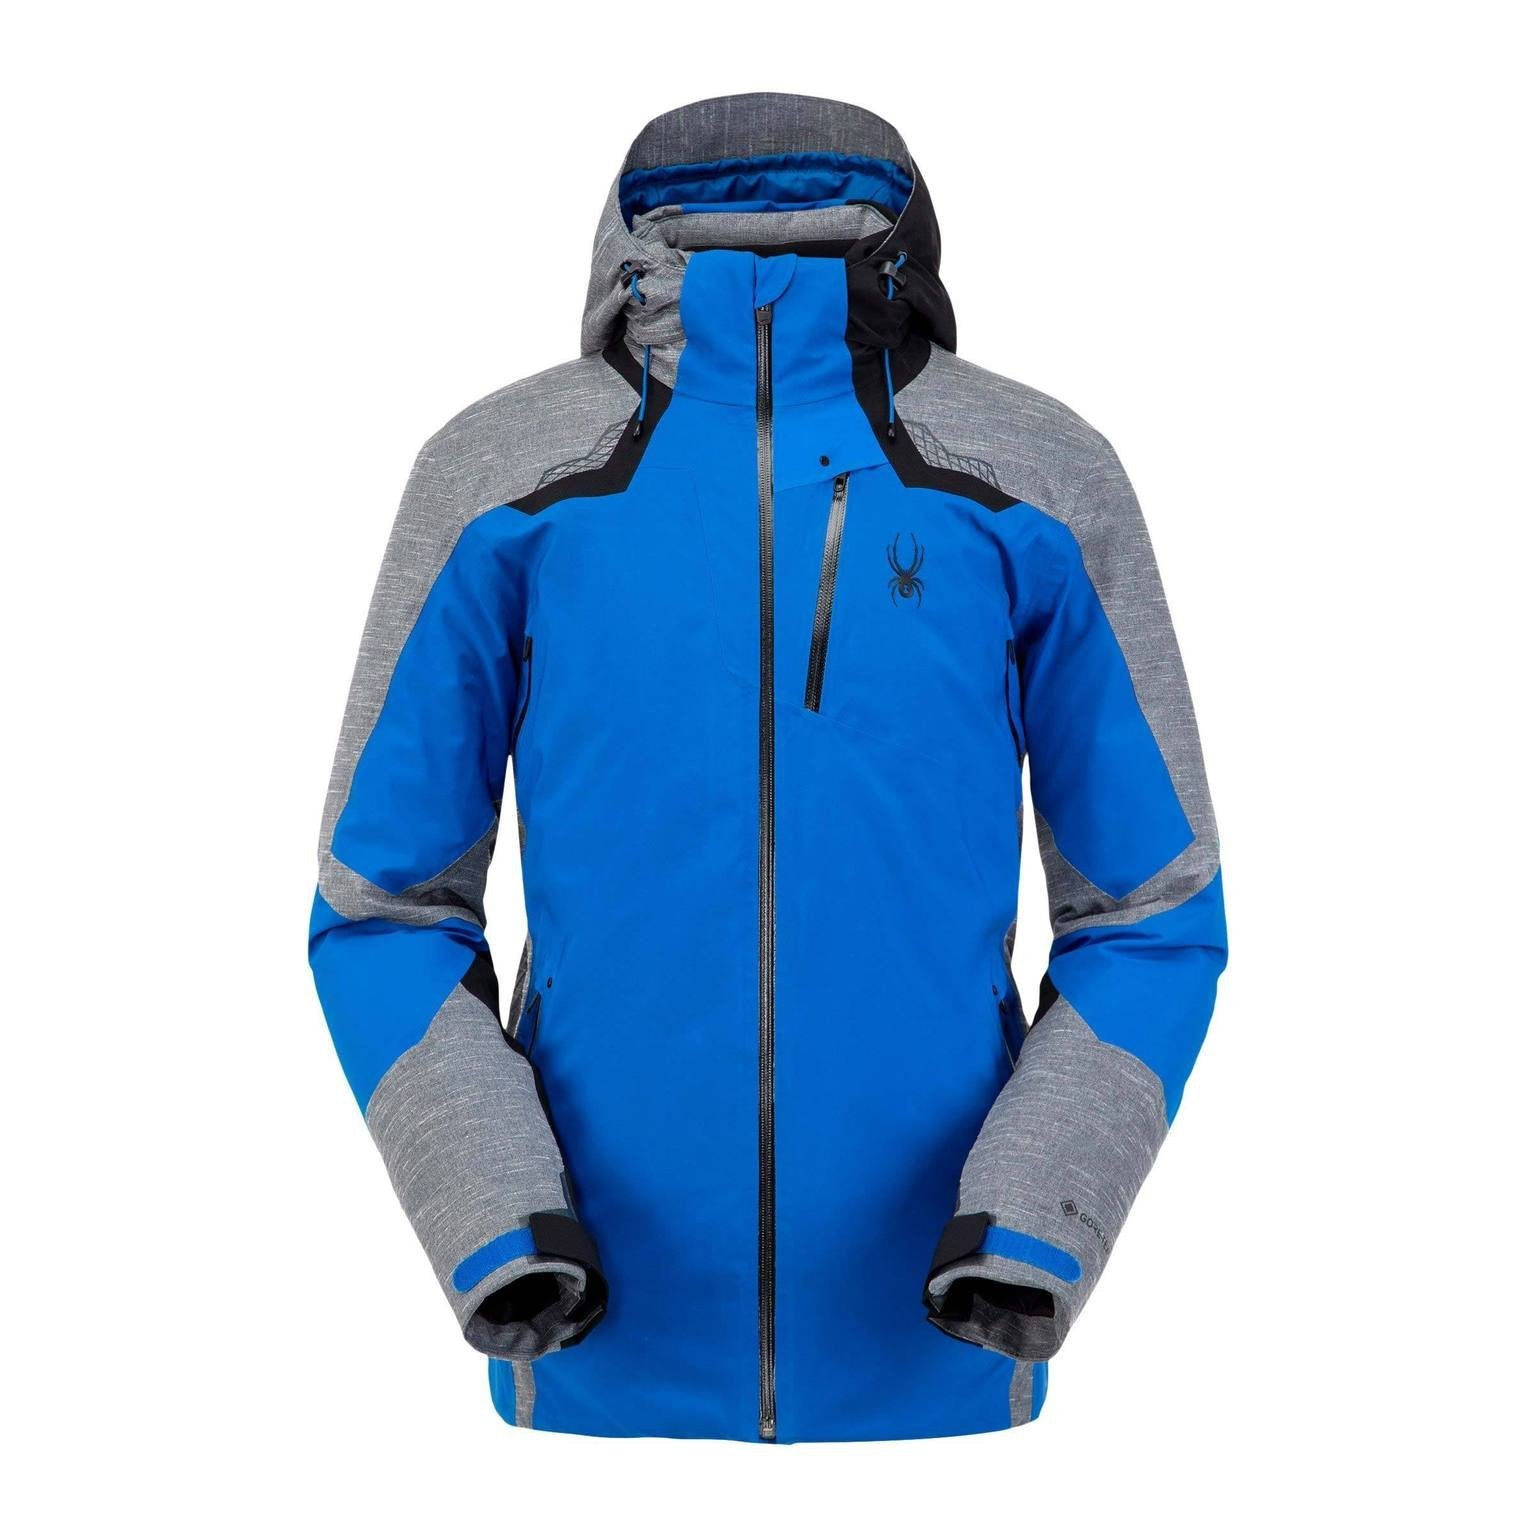 Spyder 2021 Men's LEADER GTX Jacket